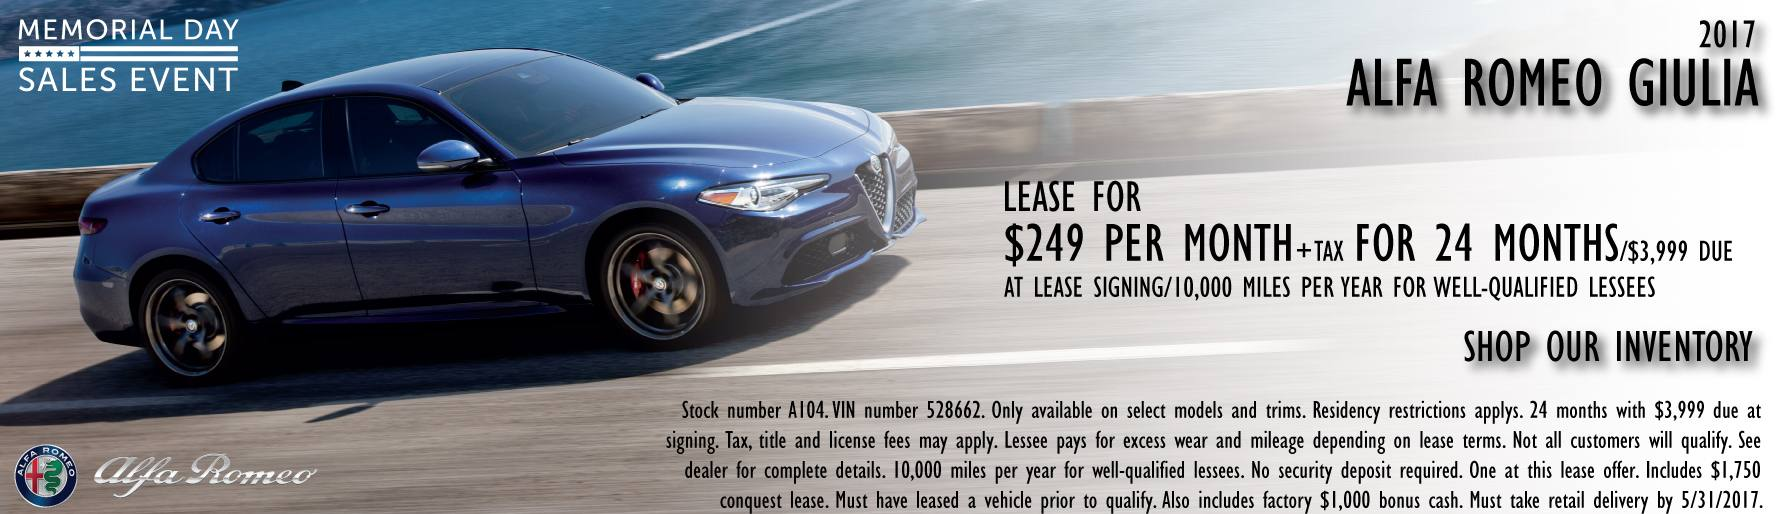 Alfa romeo giulia lease orange county